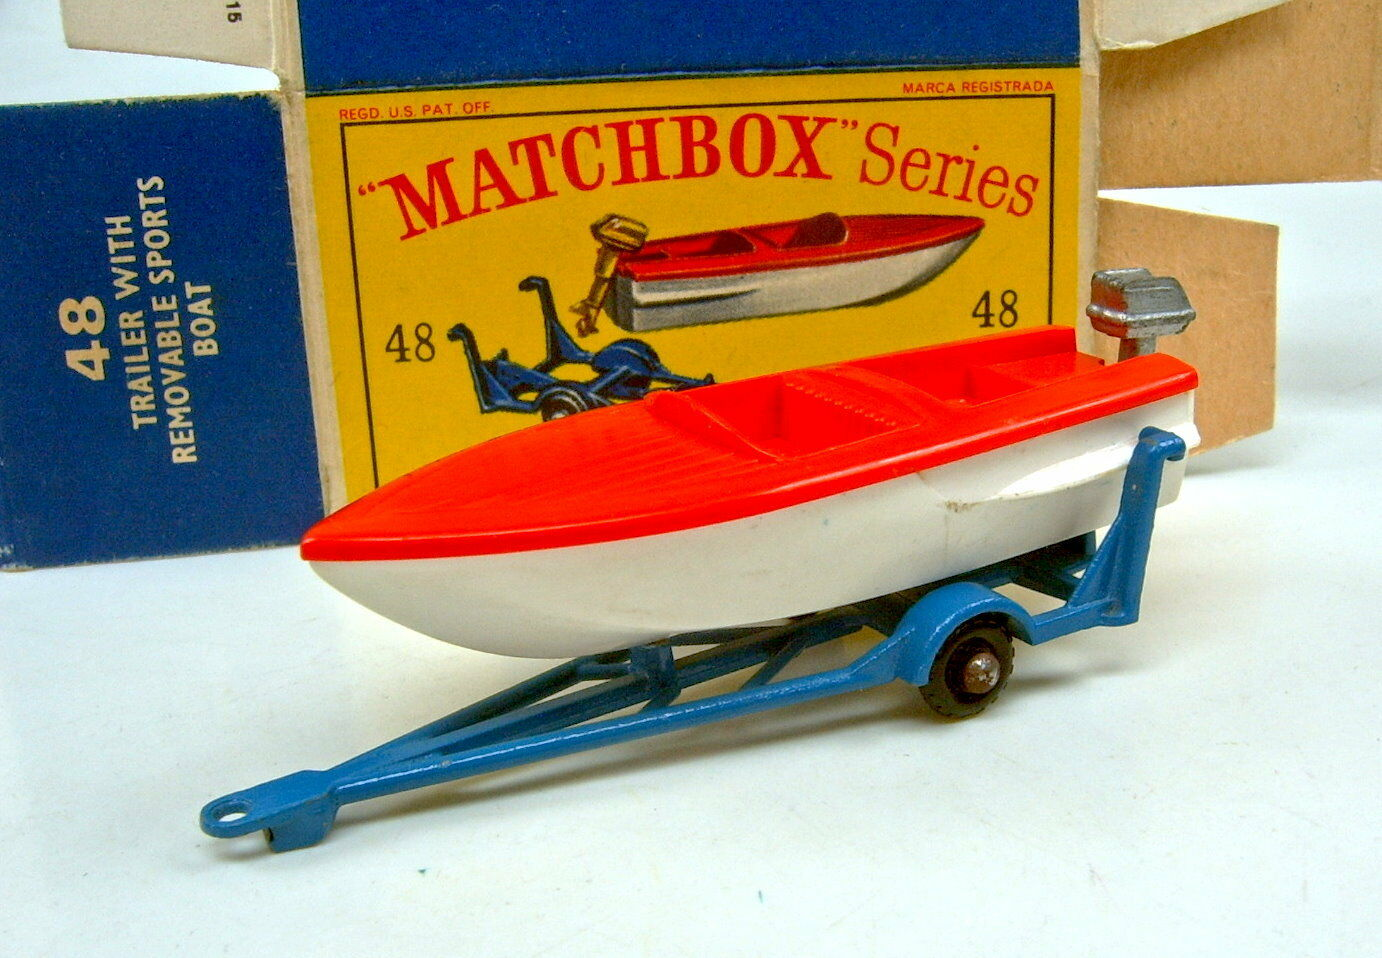 Matchbox Rw 48b Sports Boat & Trailer RARE Medium bluee trailer in  D  box